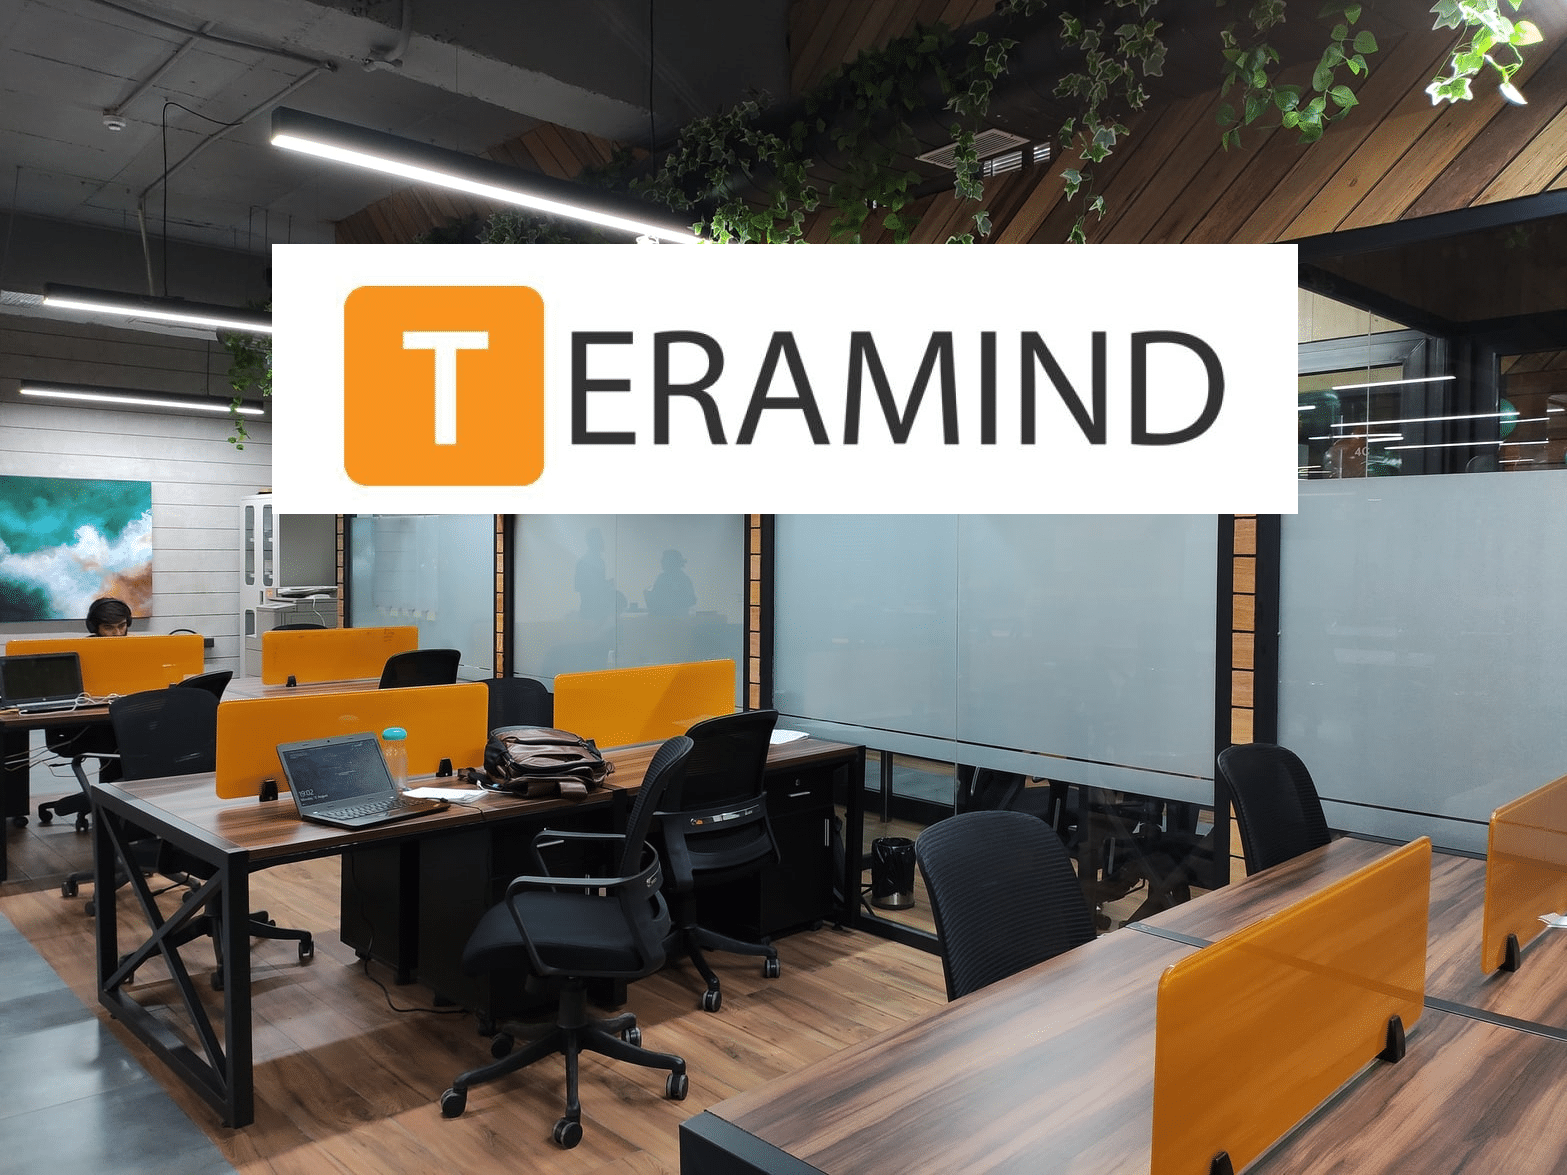 An office and Teramind logo